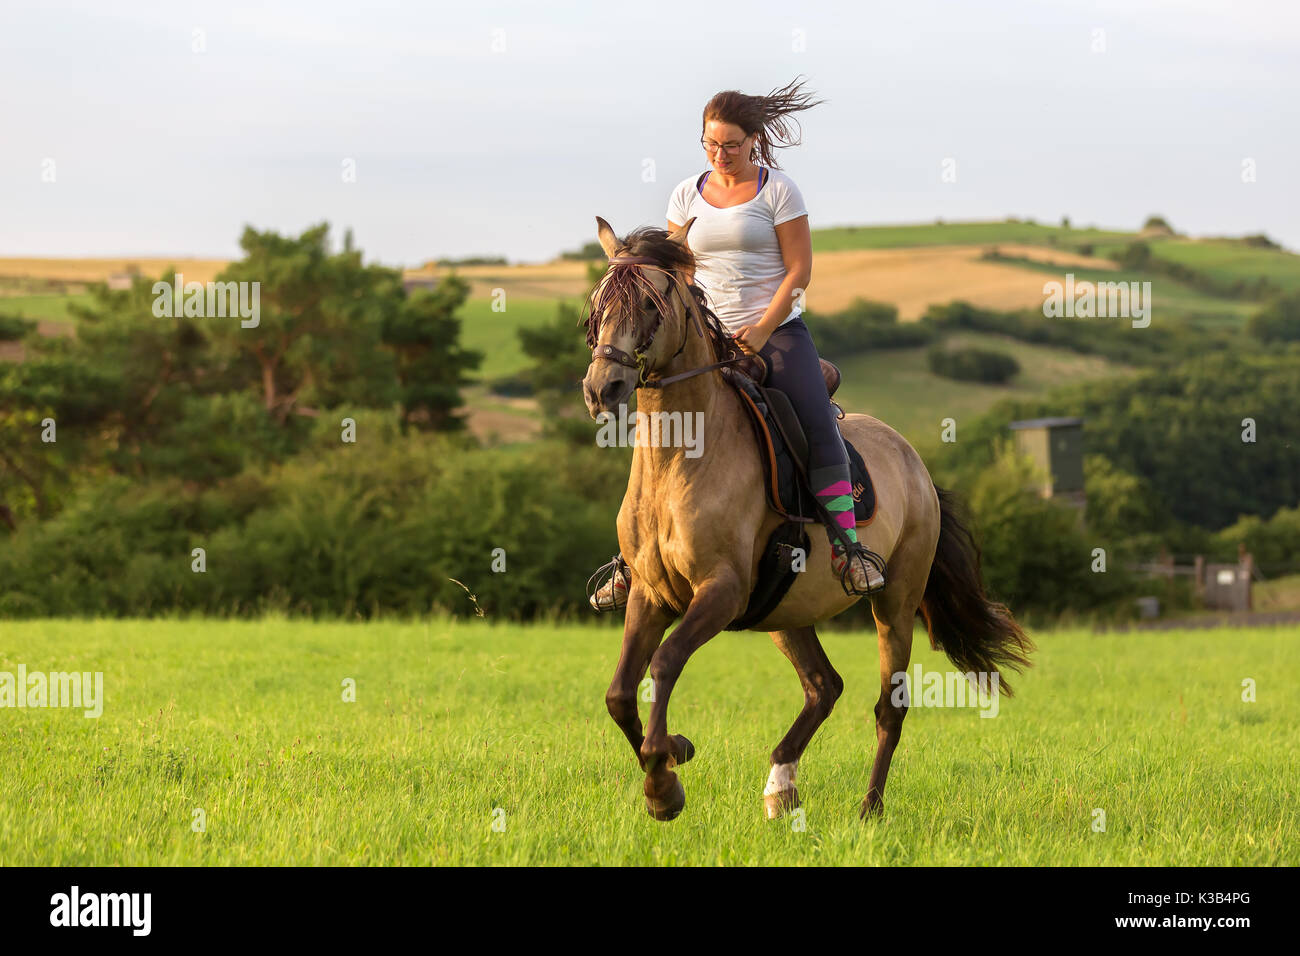 woman rides an Andalusian horse in the fields - Stock Image